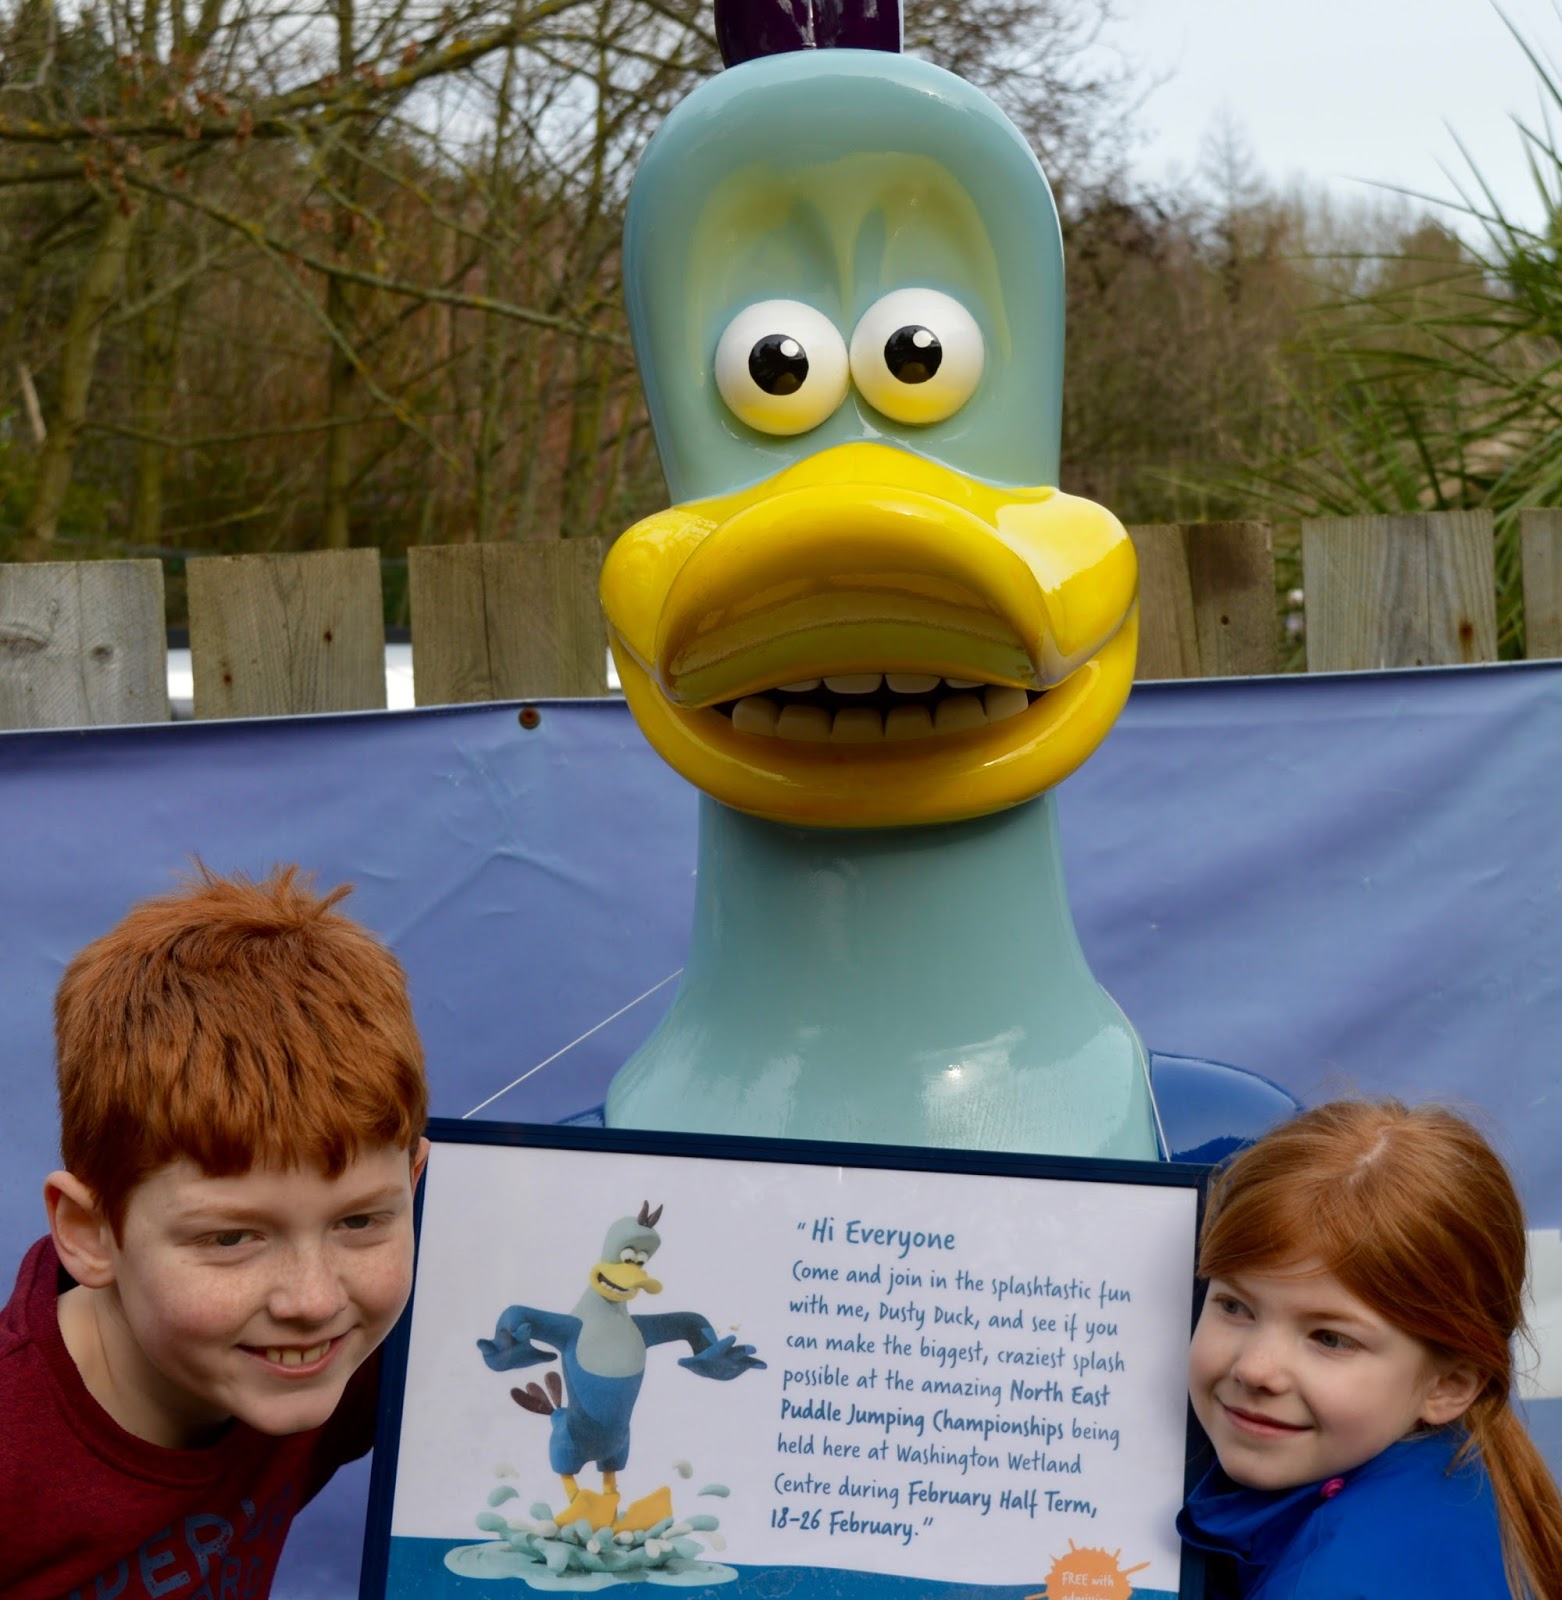 WWT Washington Wetland Centre | An Accessible North East Day Out for the Whole Family - dusty duck